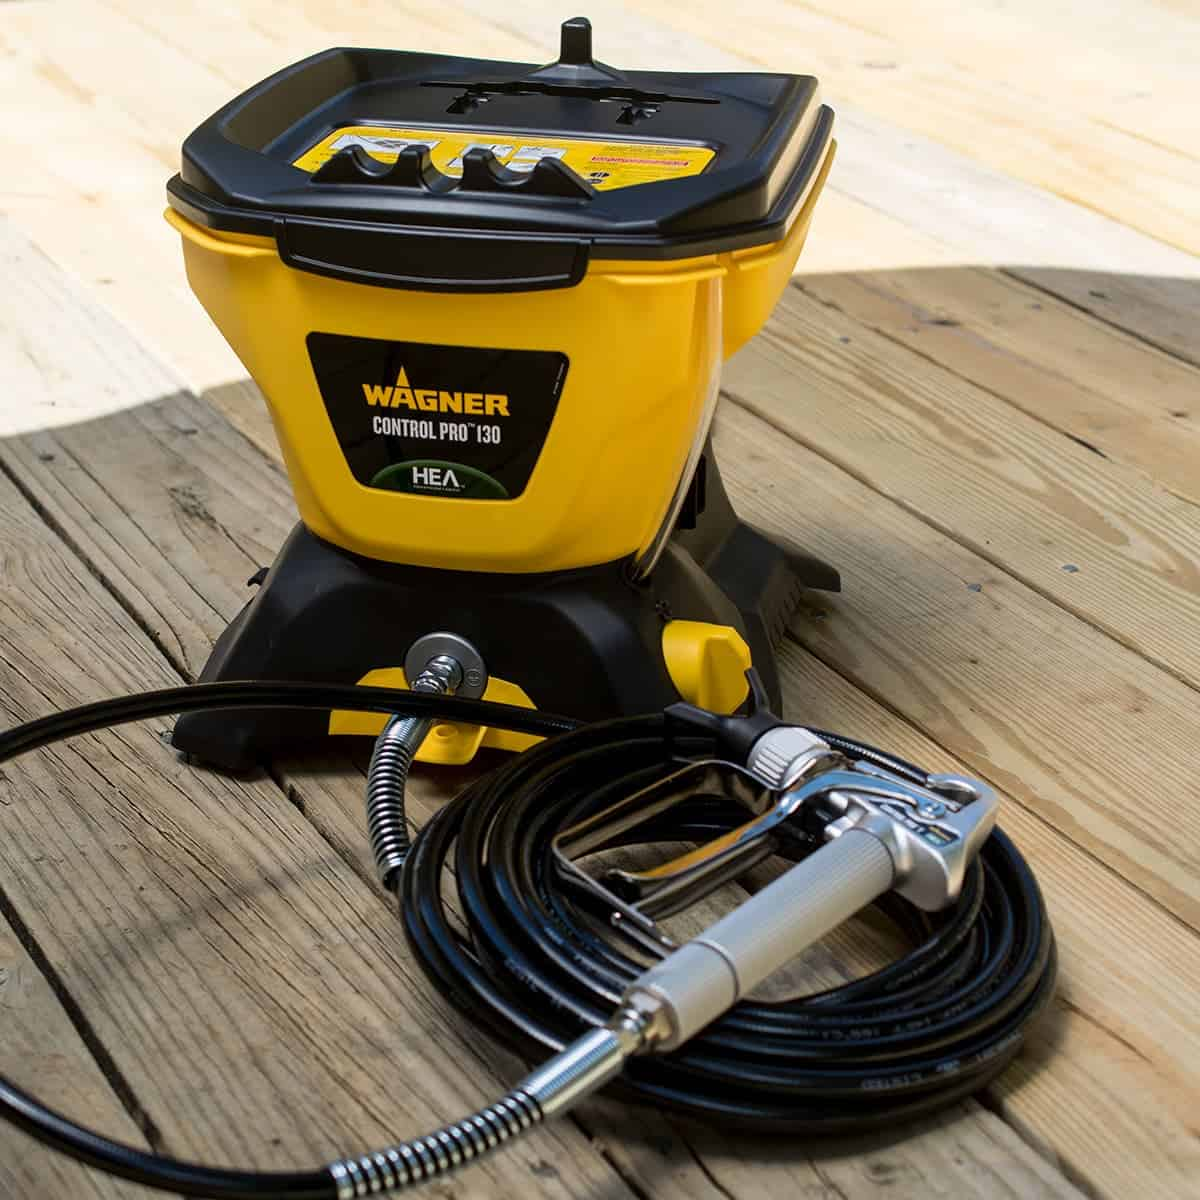 Wagner Control Pro 130 Paint Sprayer for staining deck.